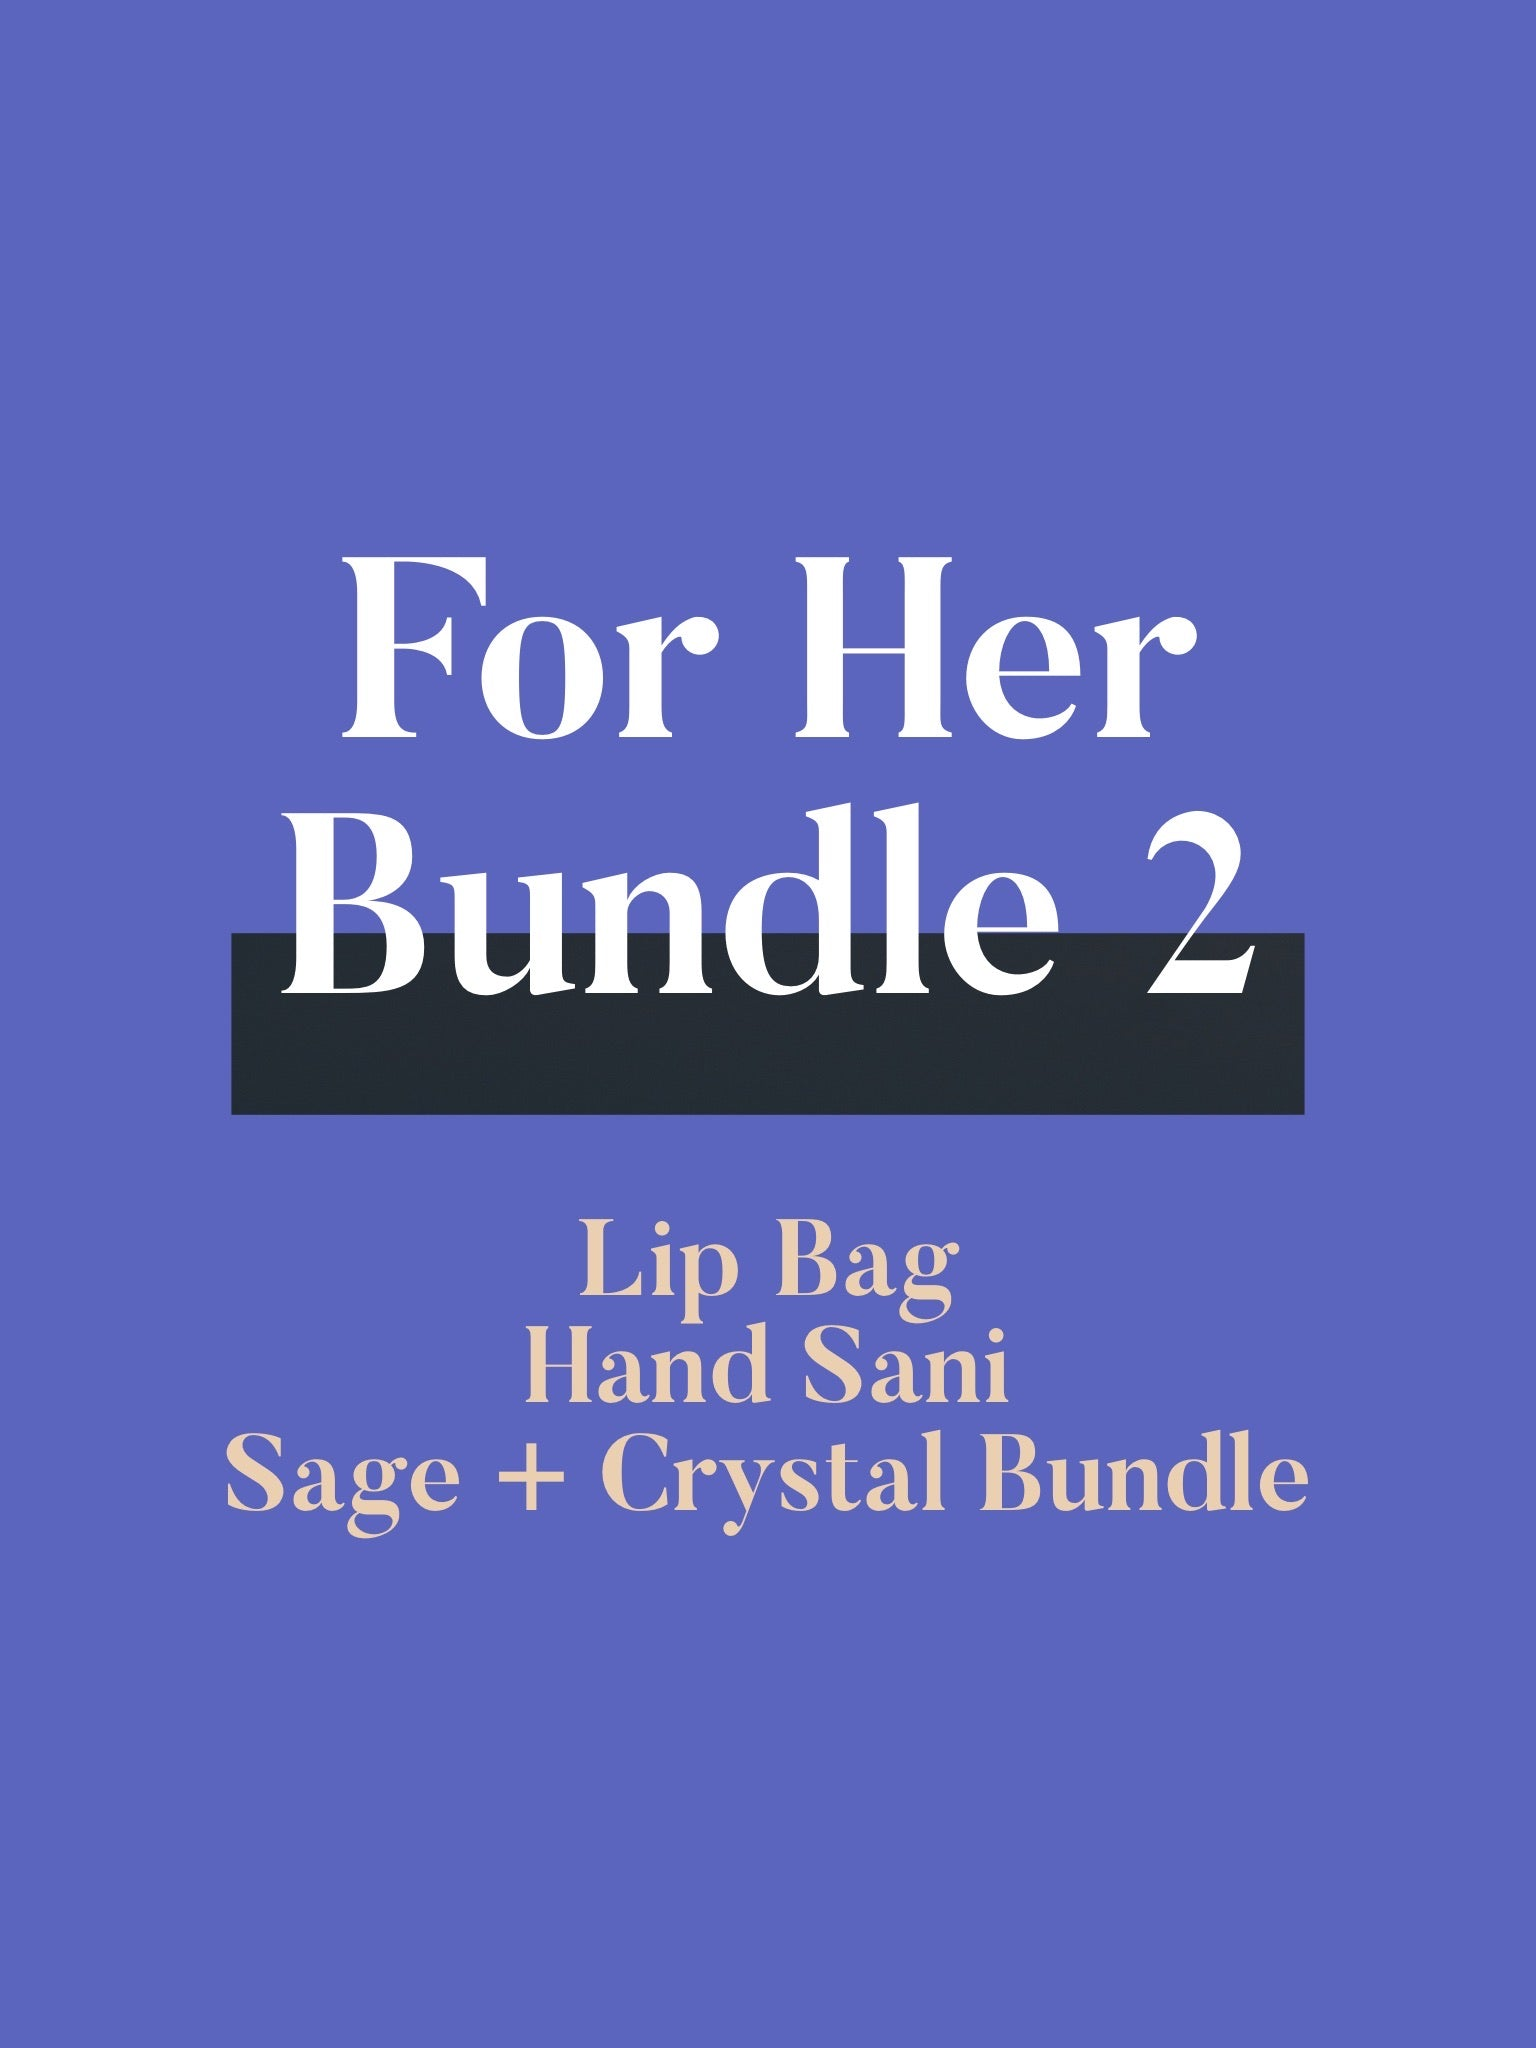 For Her Bundle 2